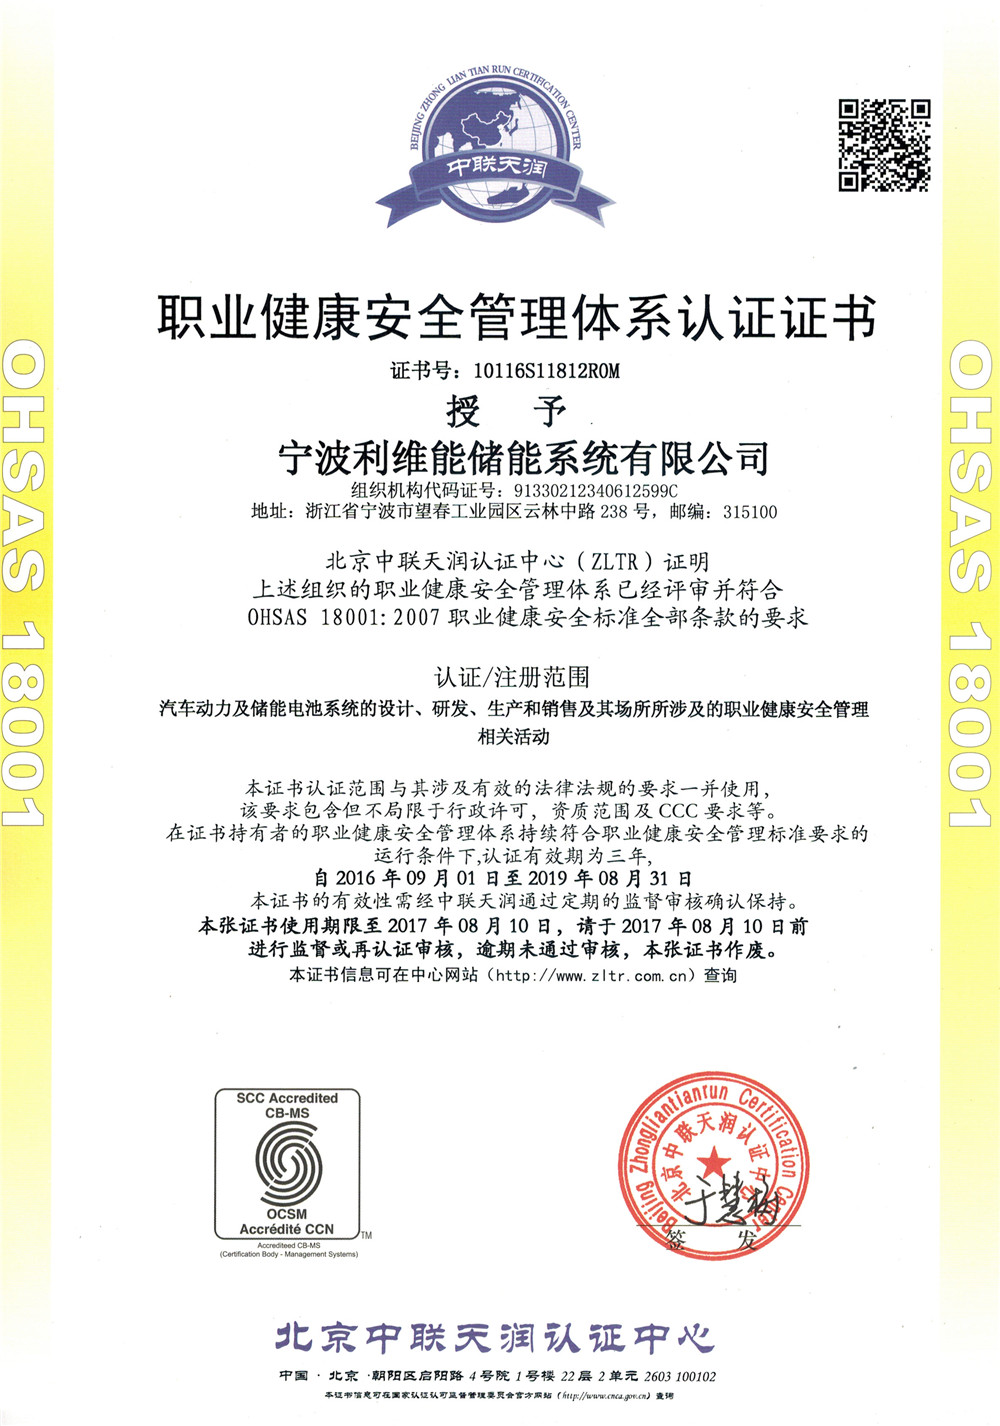 Certification-Ningbo Liwei Energy Storage System Co.,百度翻譯app還支持拍照翻譯,.Ltd